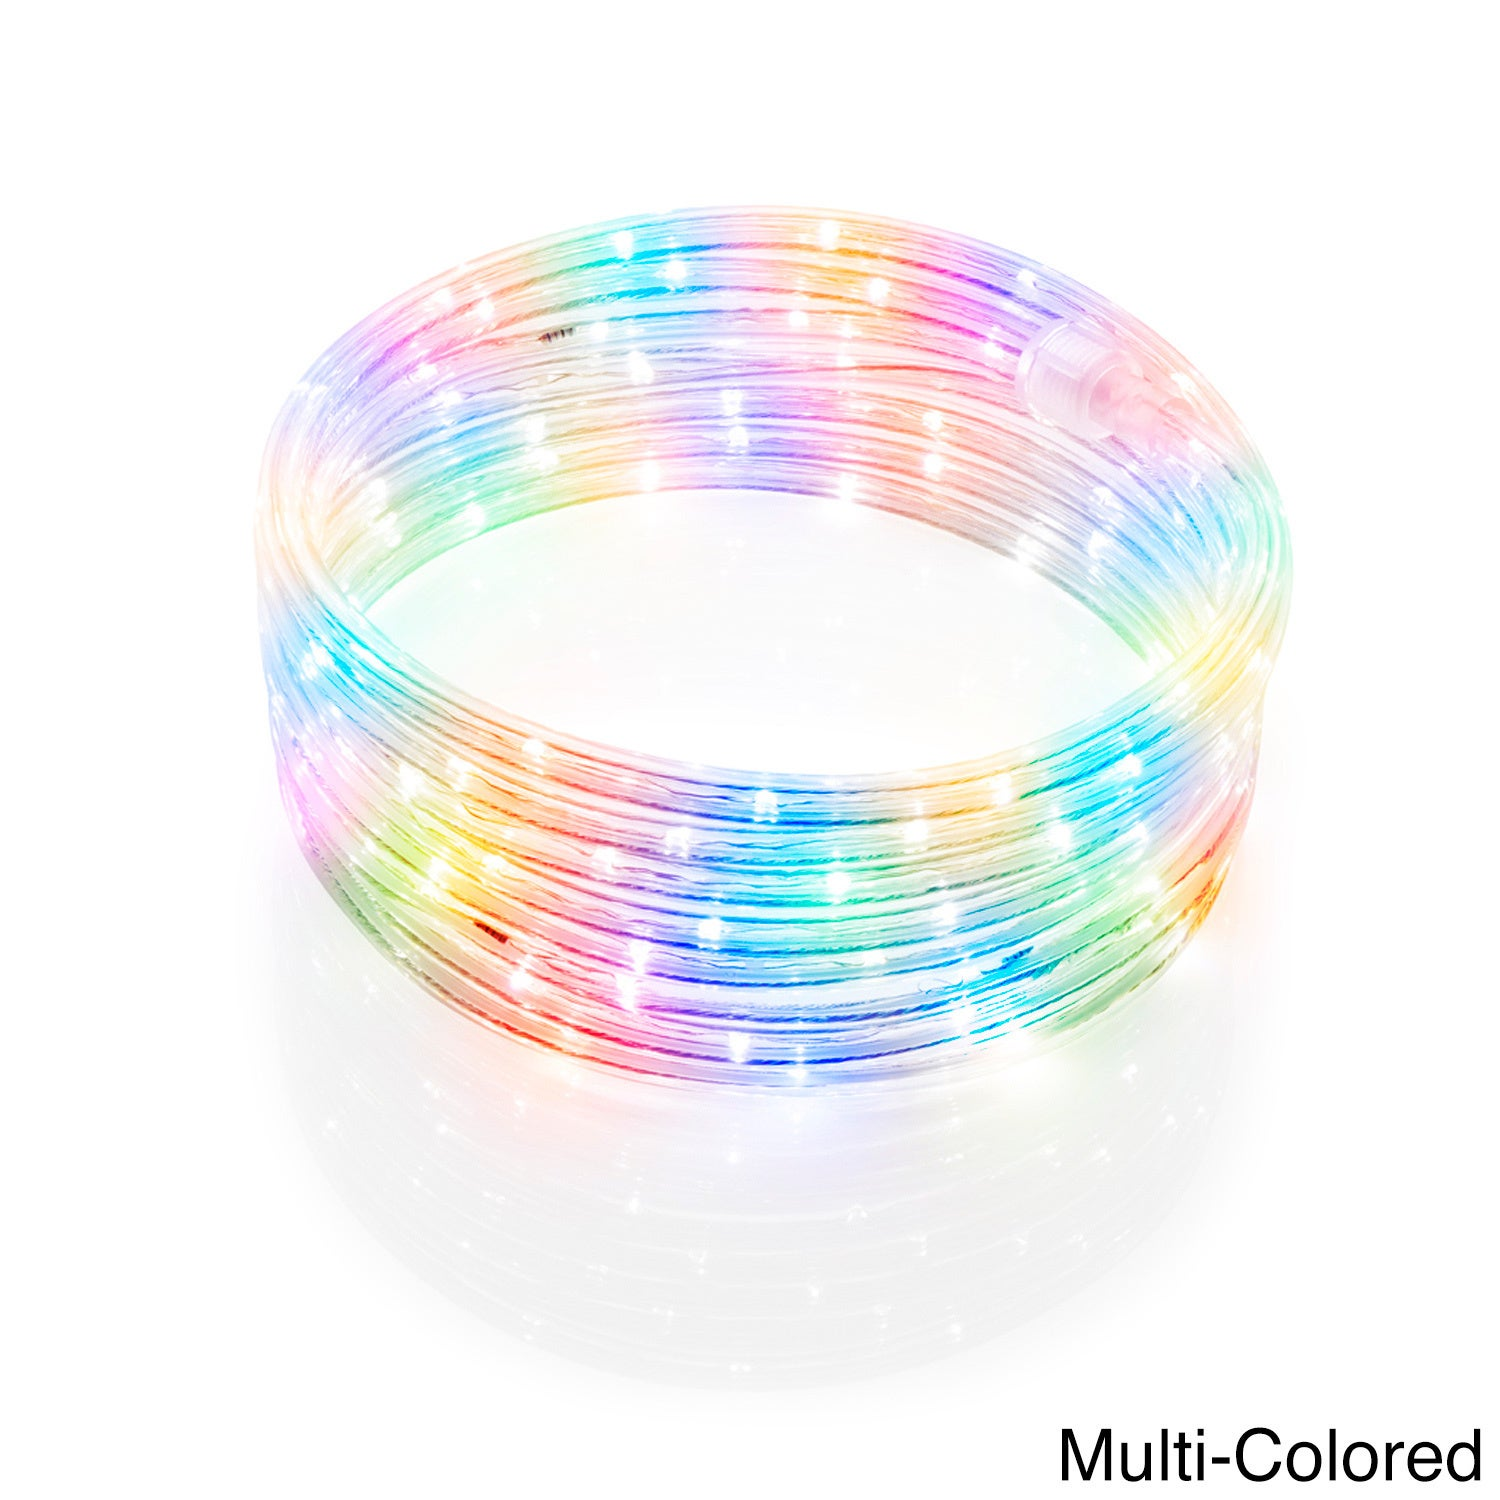 Meilo 16ft led rope light true tech 360 directional shine free meilo 16ft led rope light true tech 360 directional shine free shipping on orders over 45 overstock 15558422 aloadofball Image collections